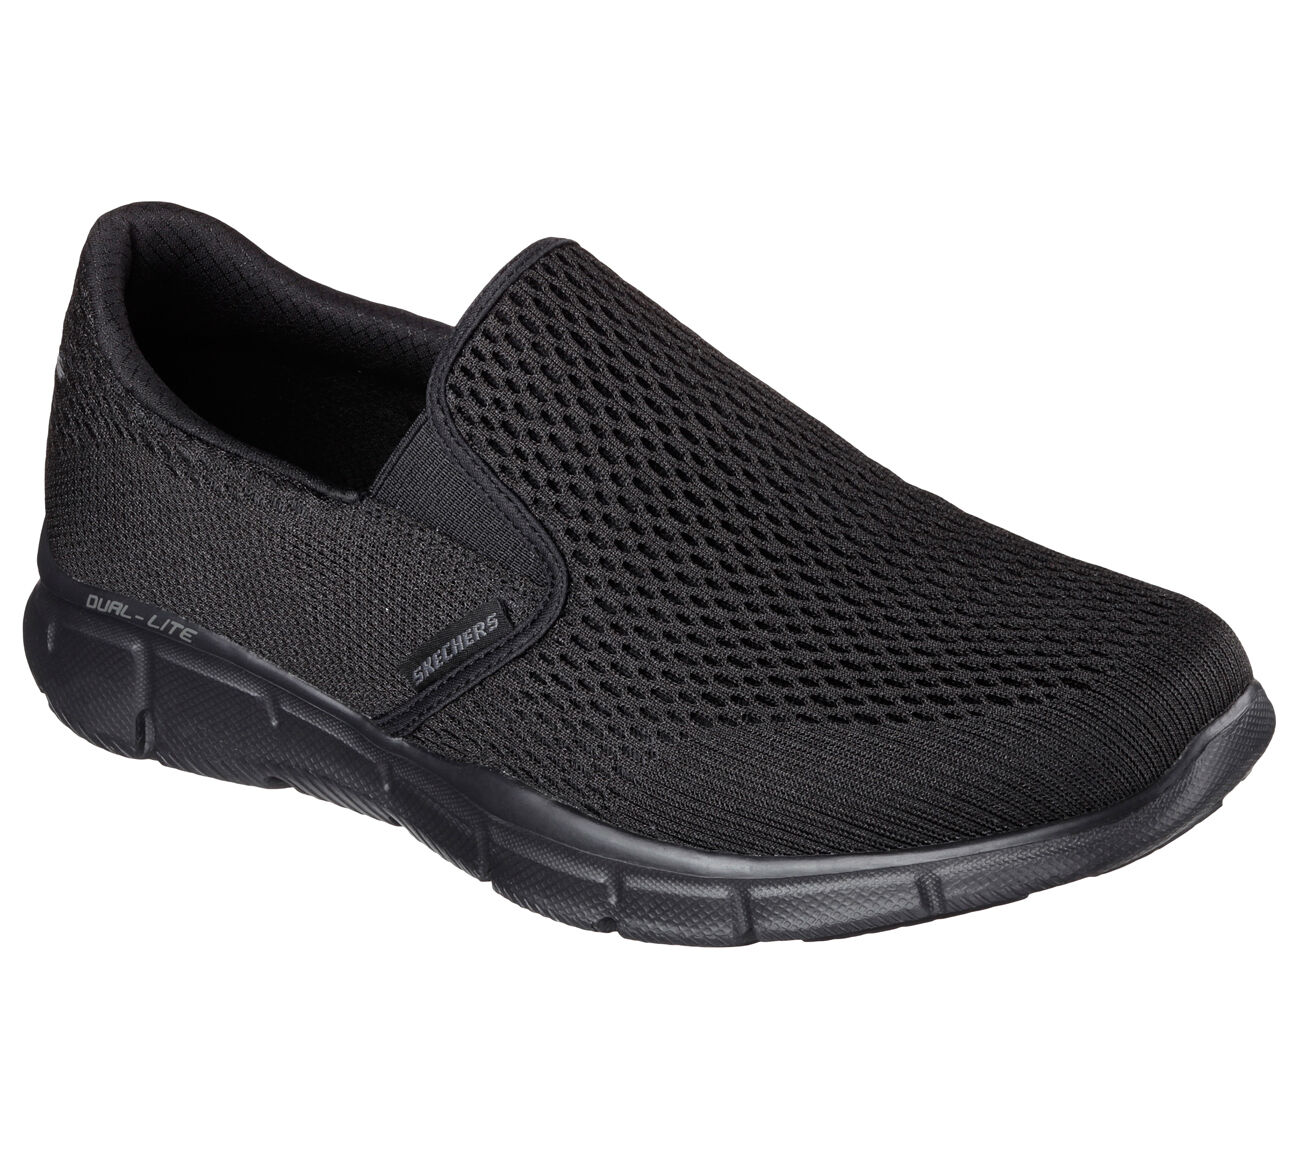 51509 W Wide Fit Black Skechers shoes Men Gel Memory Foam Comfort Slip On Casual